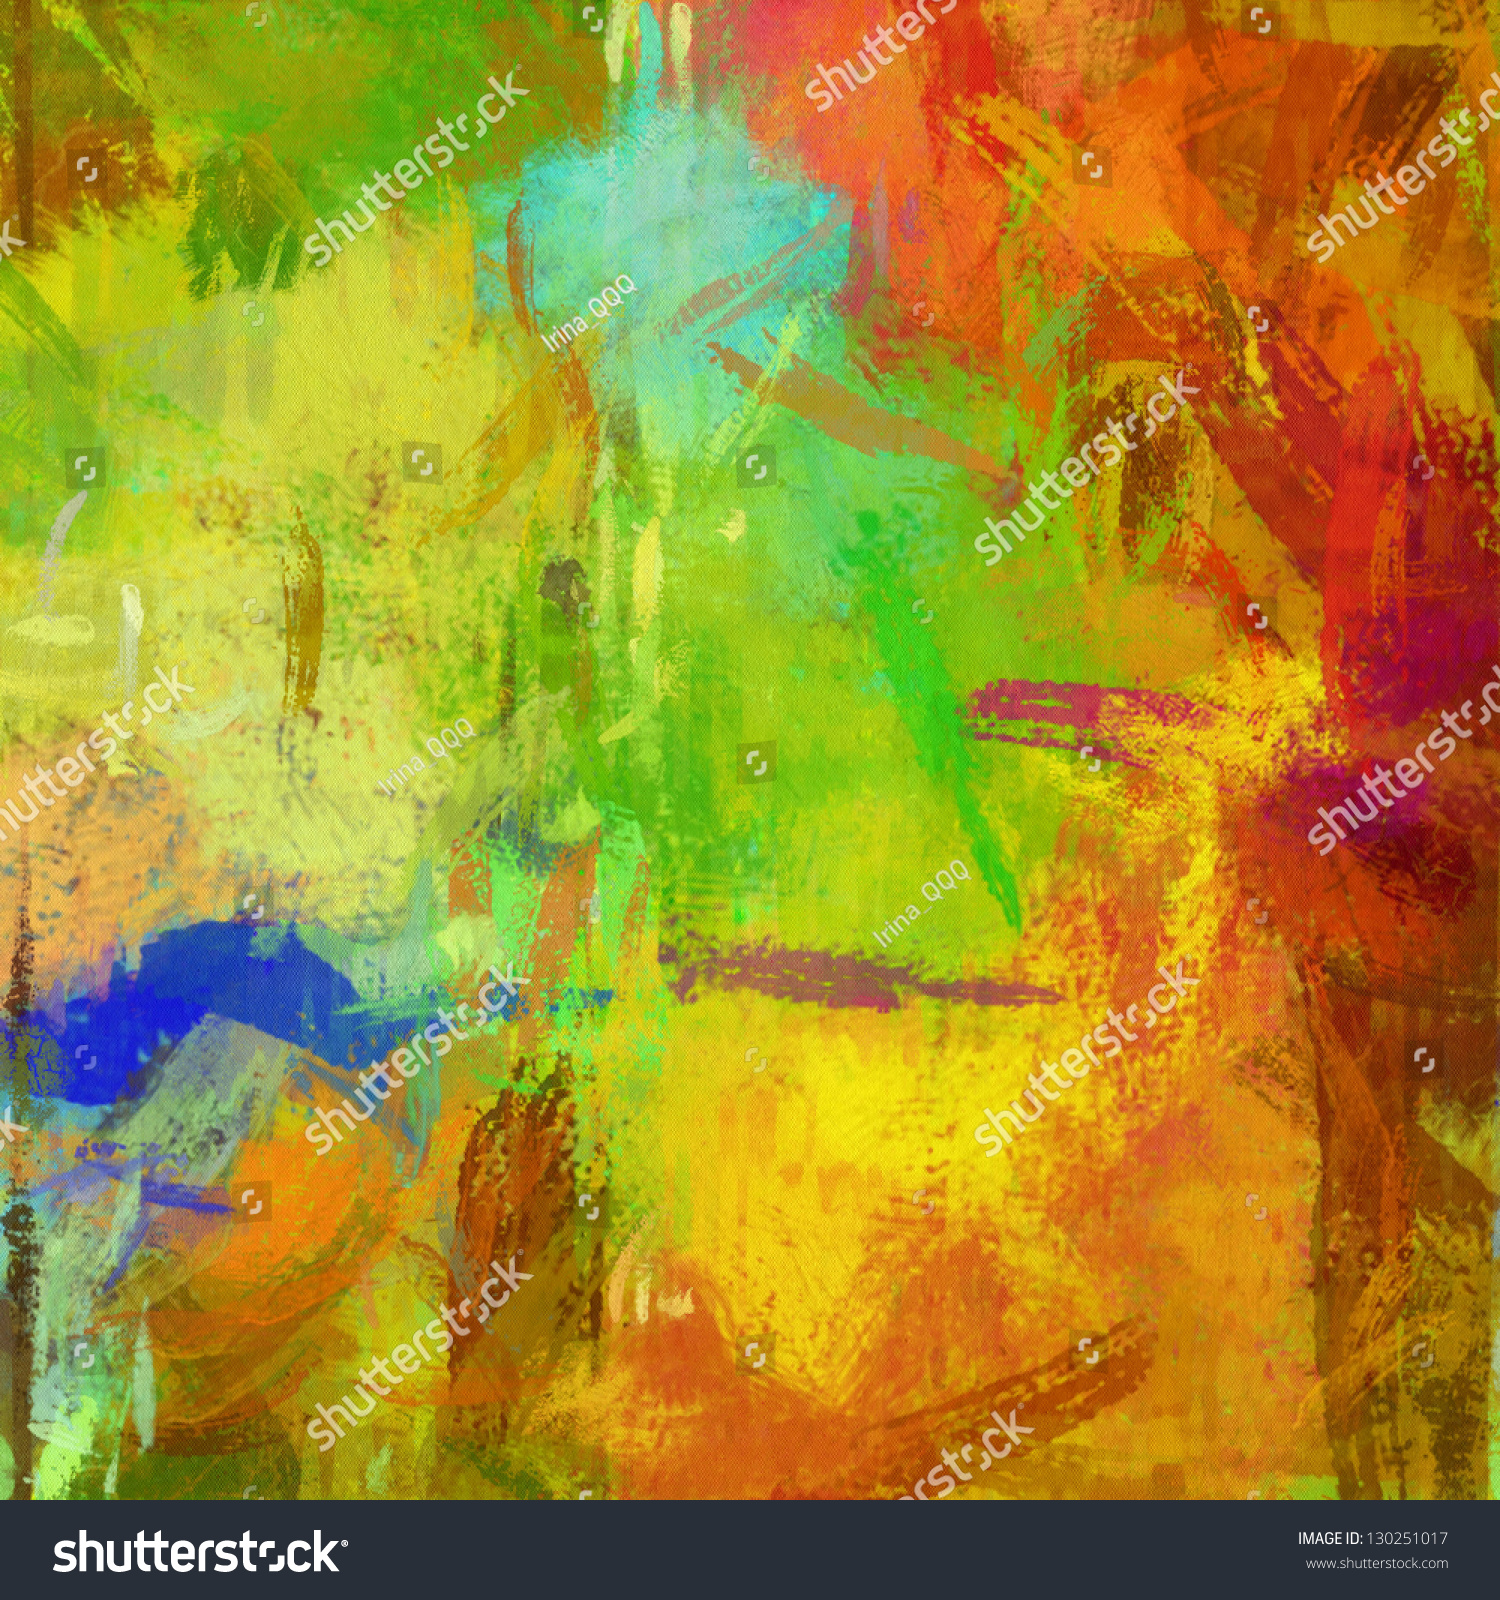 Art Abstract Painted Rainbow Chaotic Background Stock Illustration ...